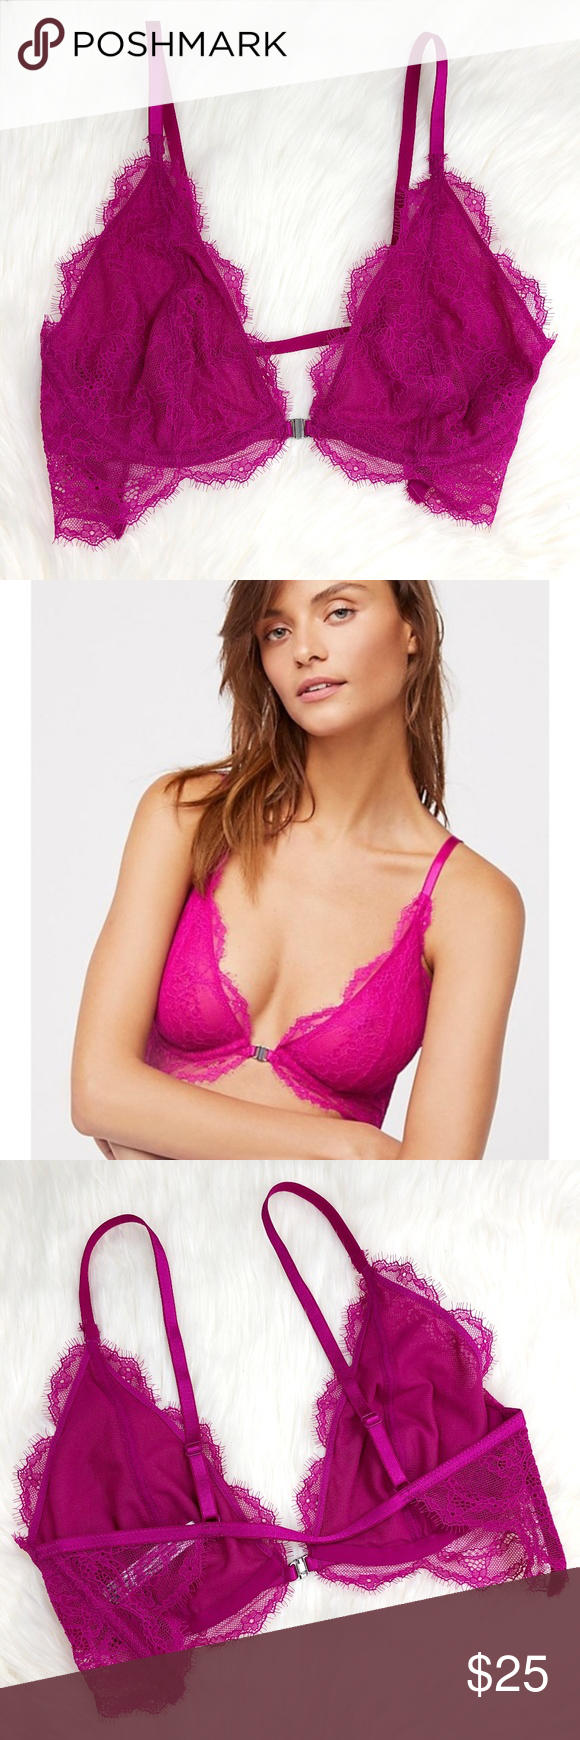 3852742541f Free People You're So Great Bra 36C Intimately Free People fuchsia / pink  lace underwire bra / bralette. Open back. Front clasp. Like new condition.